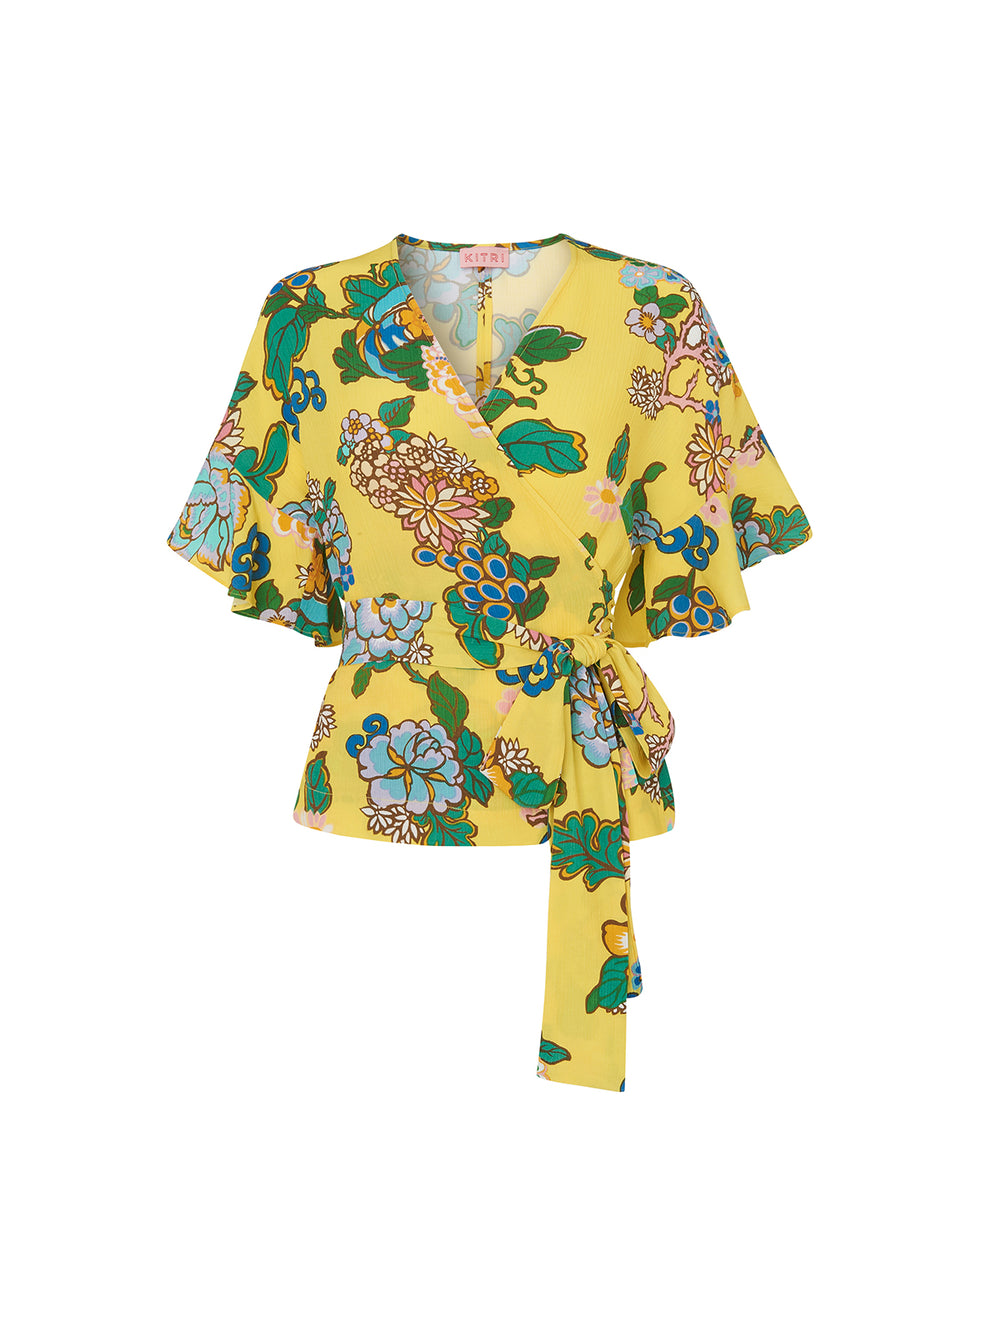 Alexis Yellow Printed Frill Wrap Top by KITRI Studio